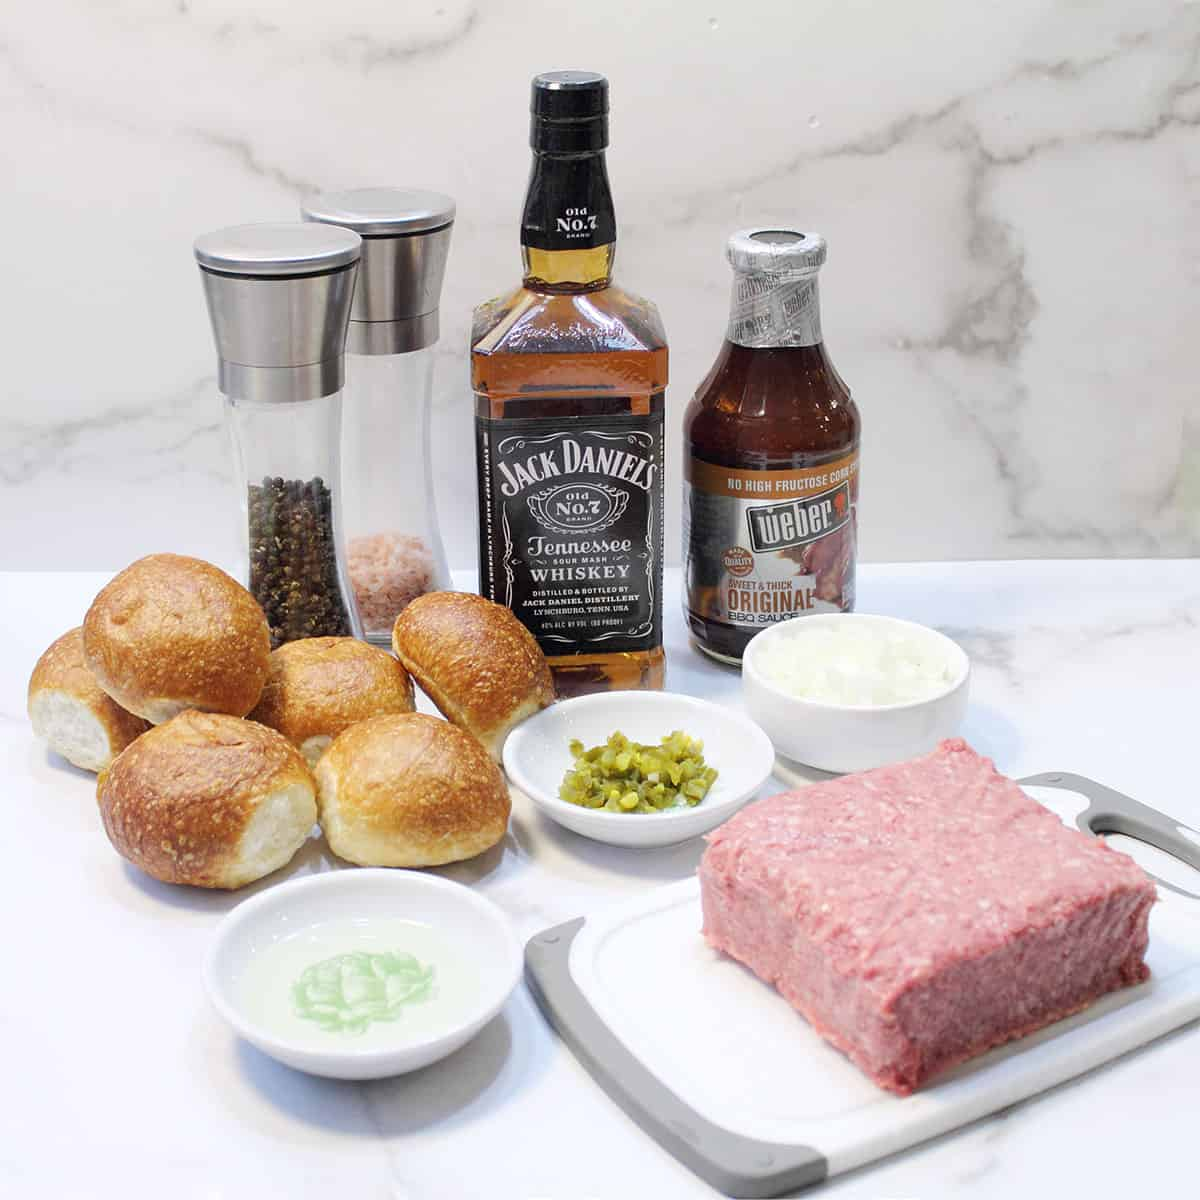 ingredients for BBQ Sliders with Jack Daniels BBQ sauce.